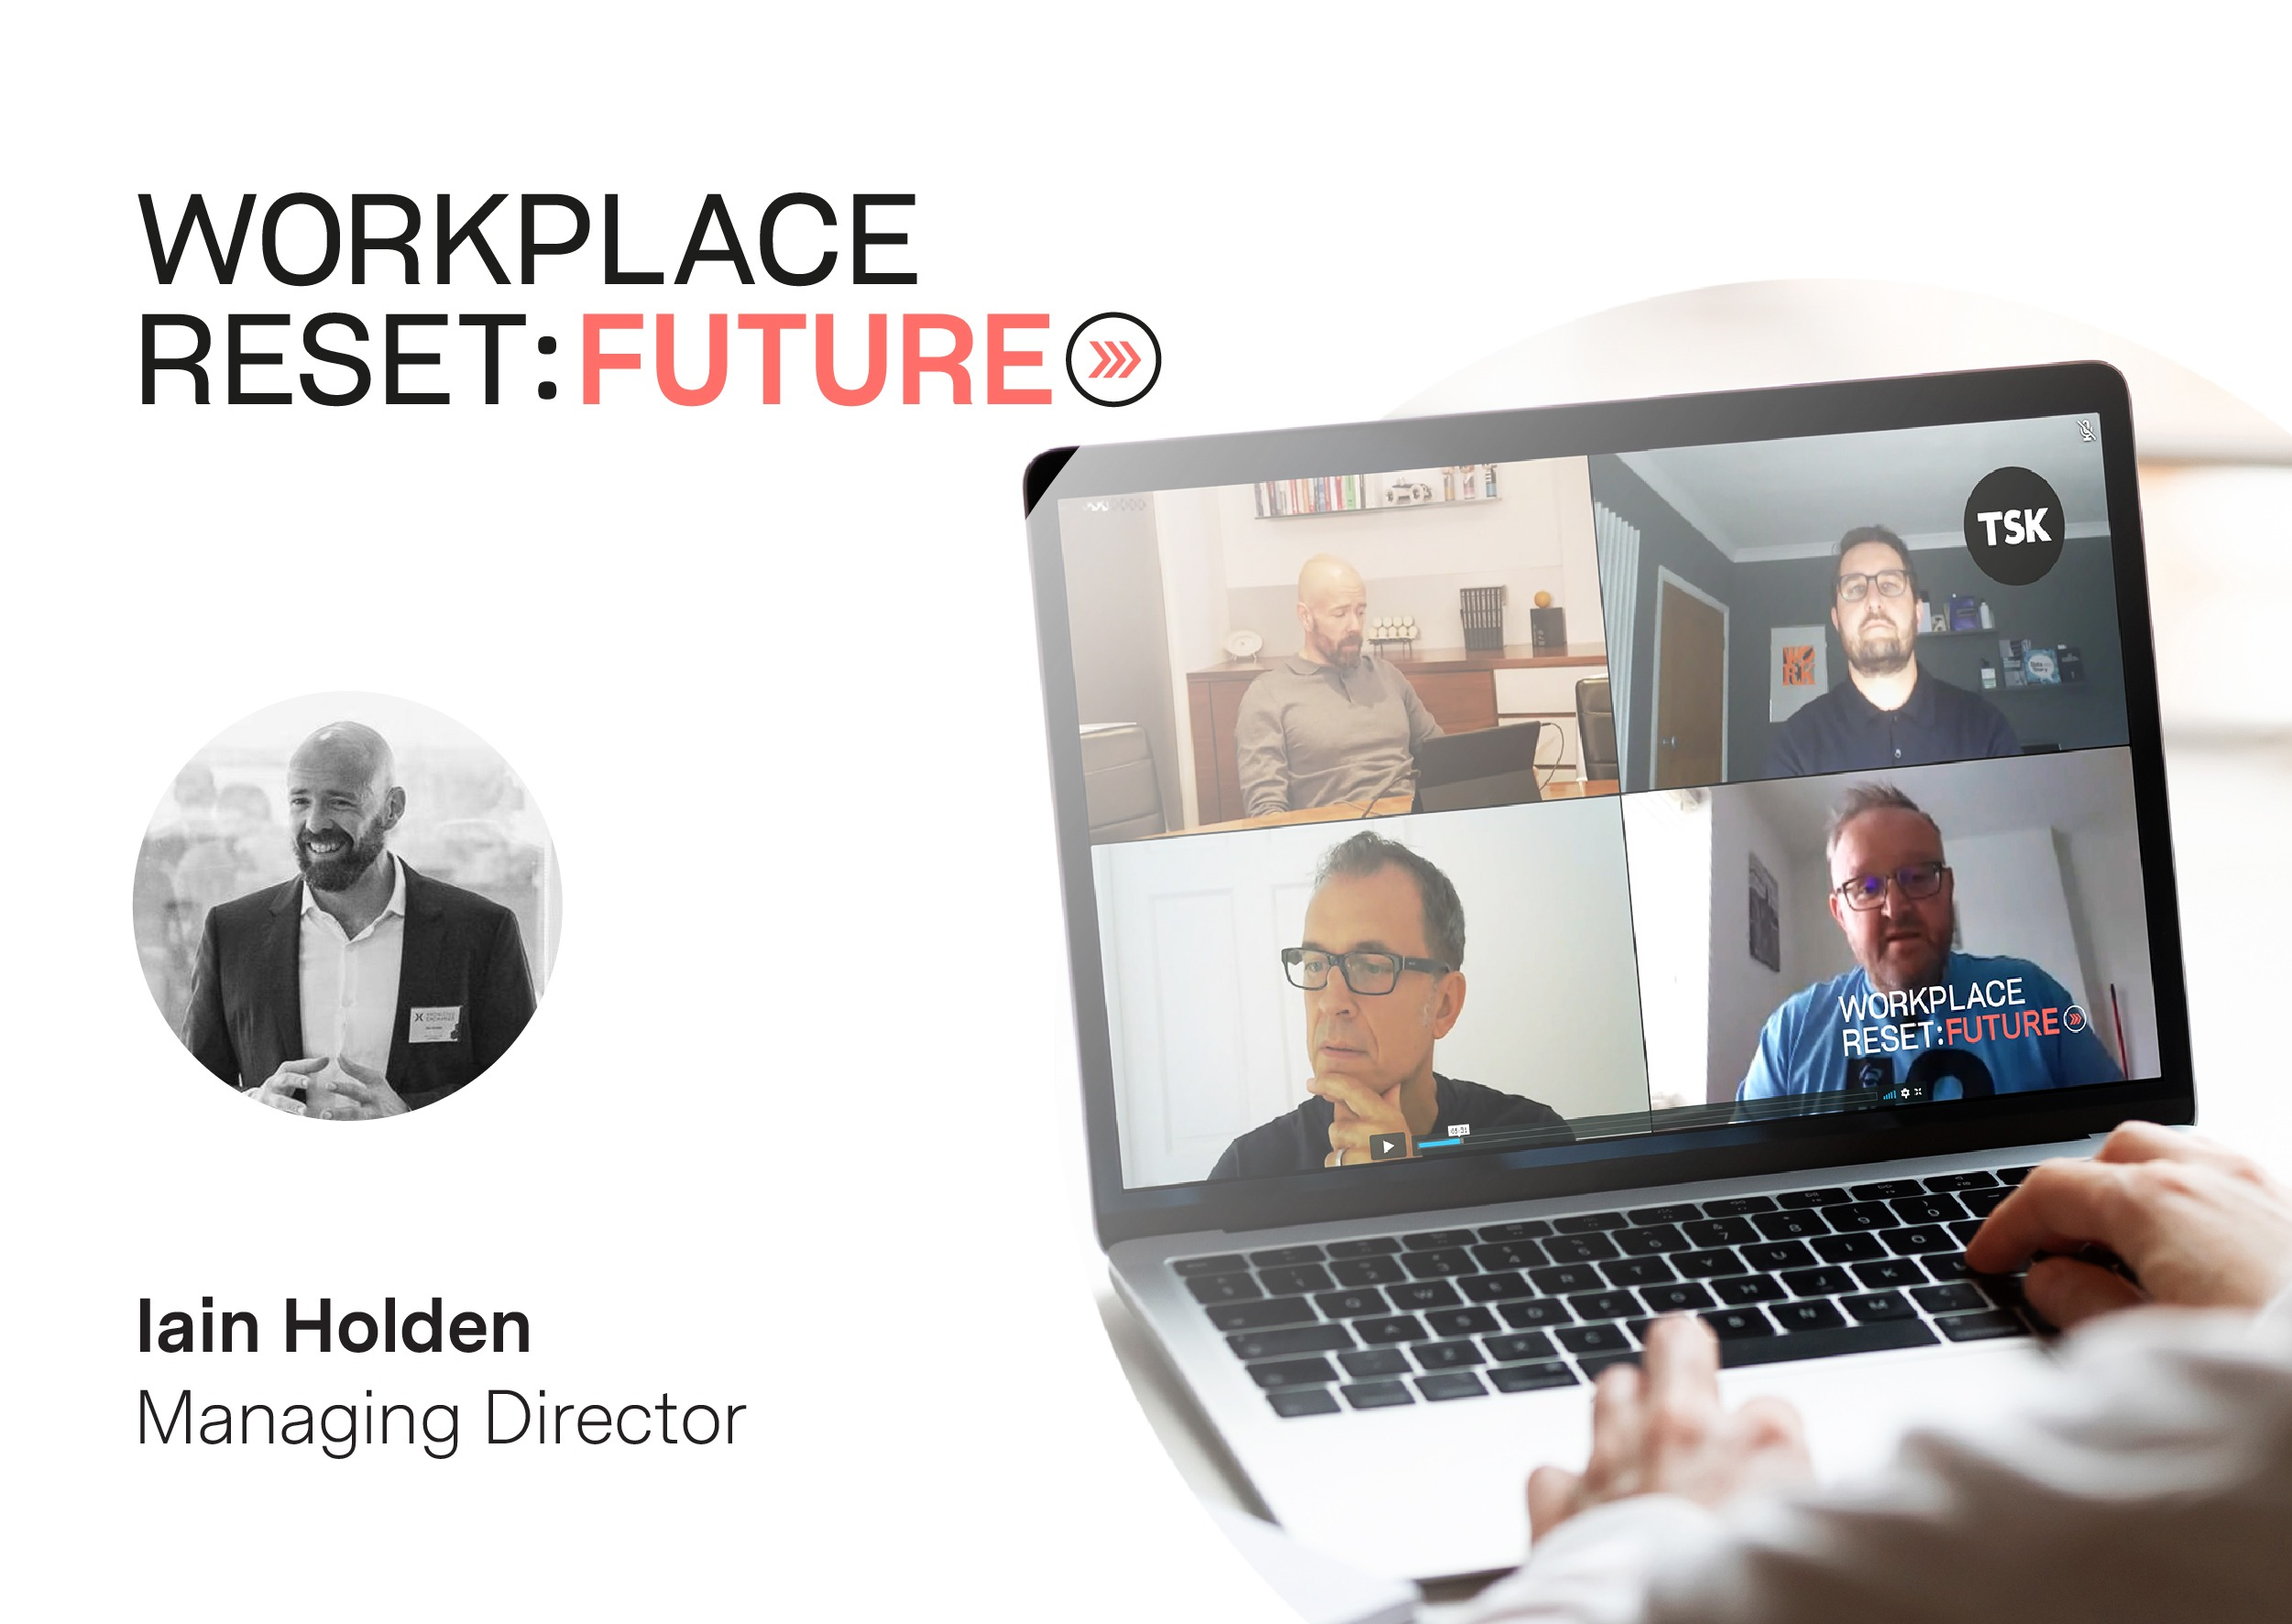 The future of the workplace: webinar highlights